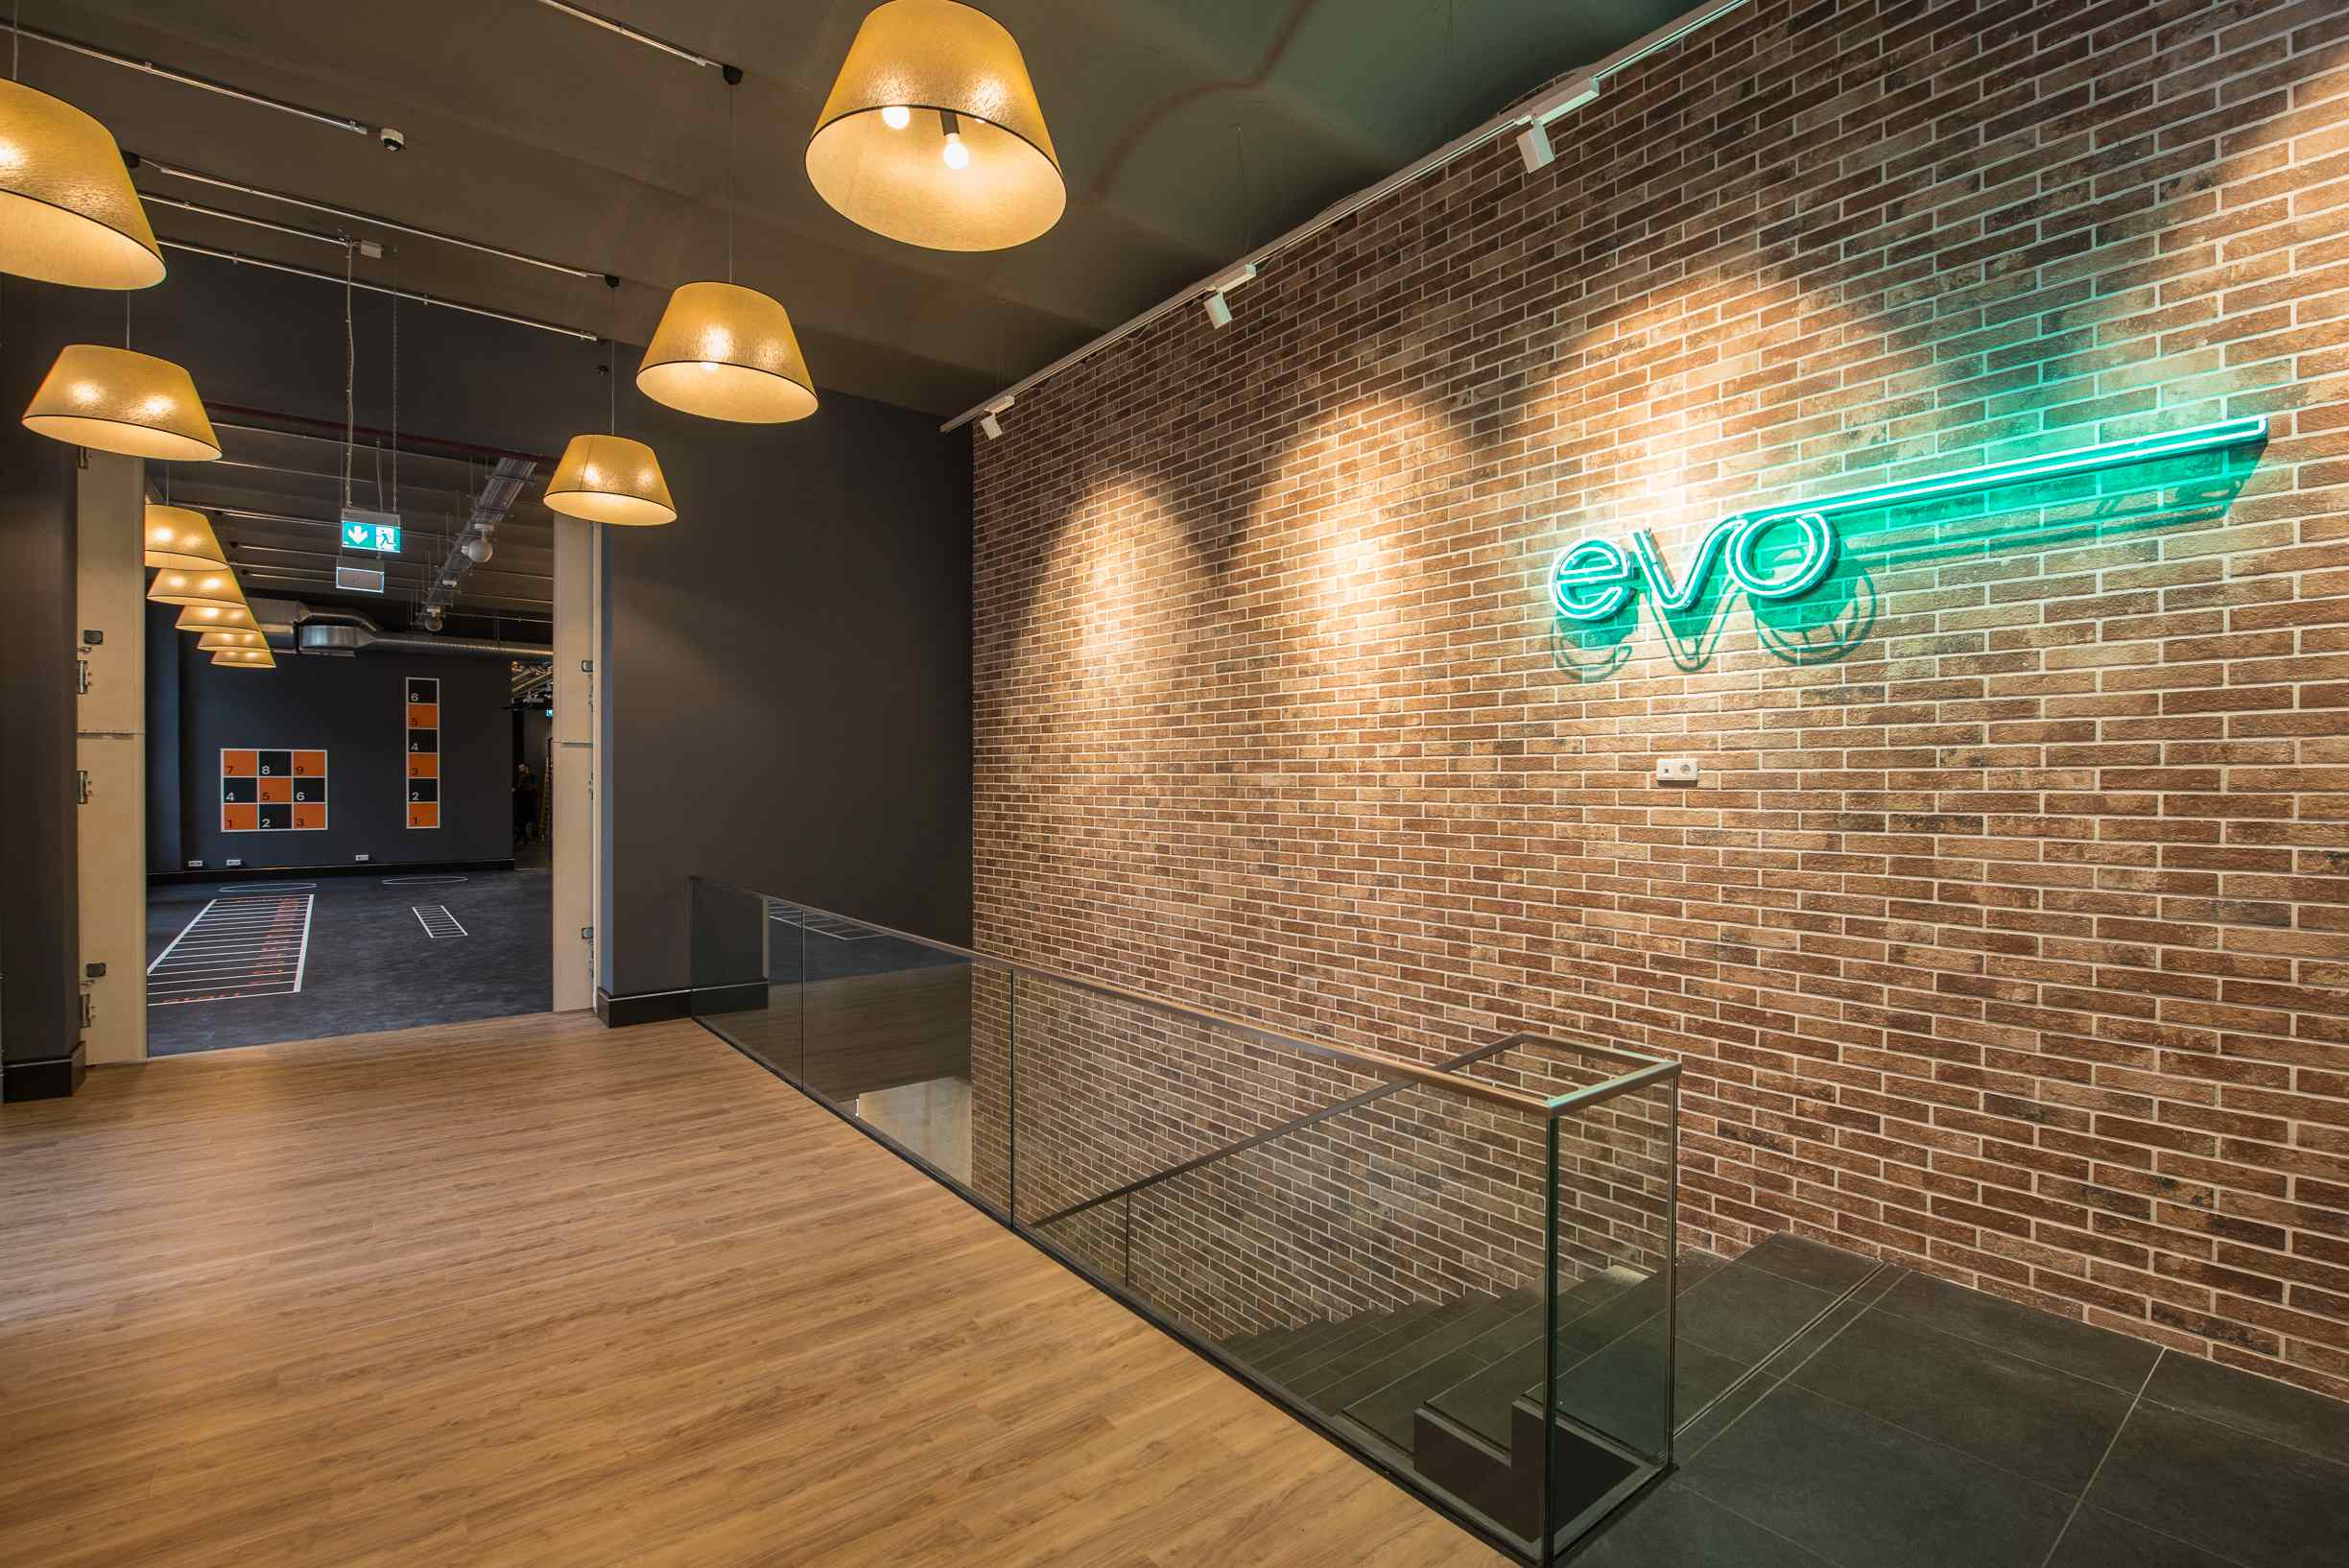 evo fitness, berlin